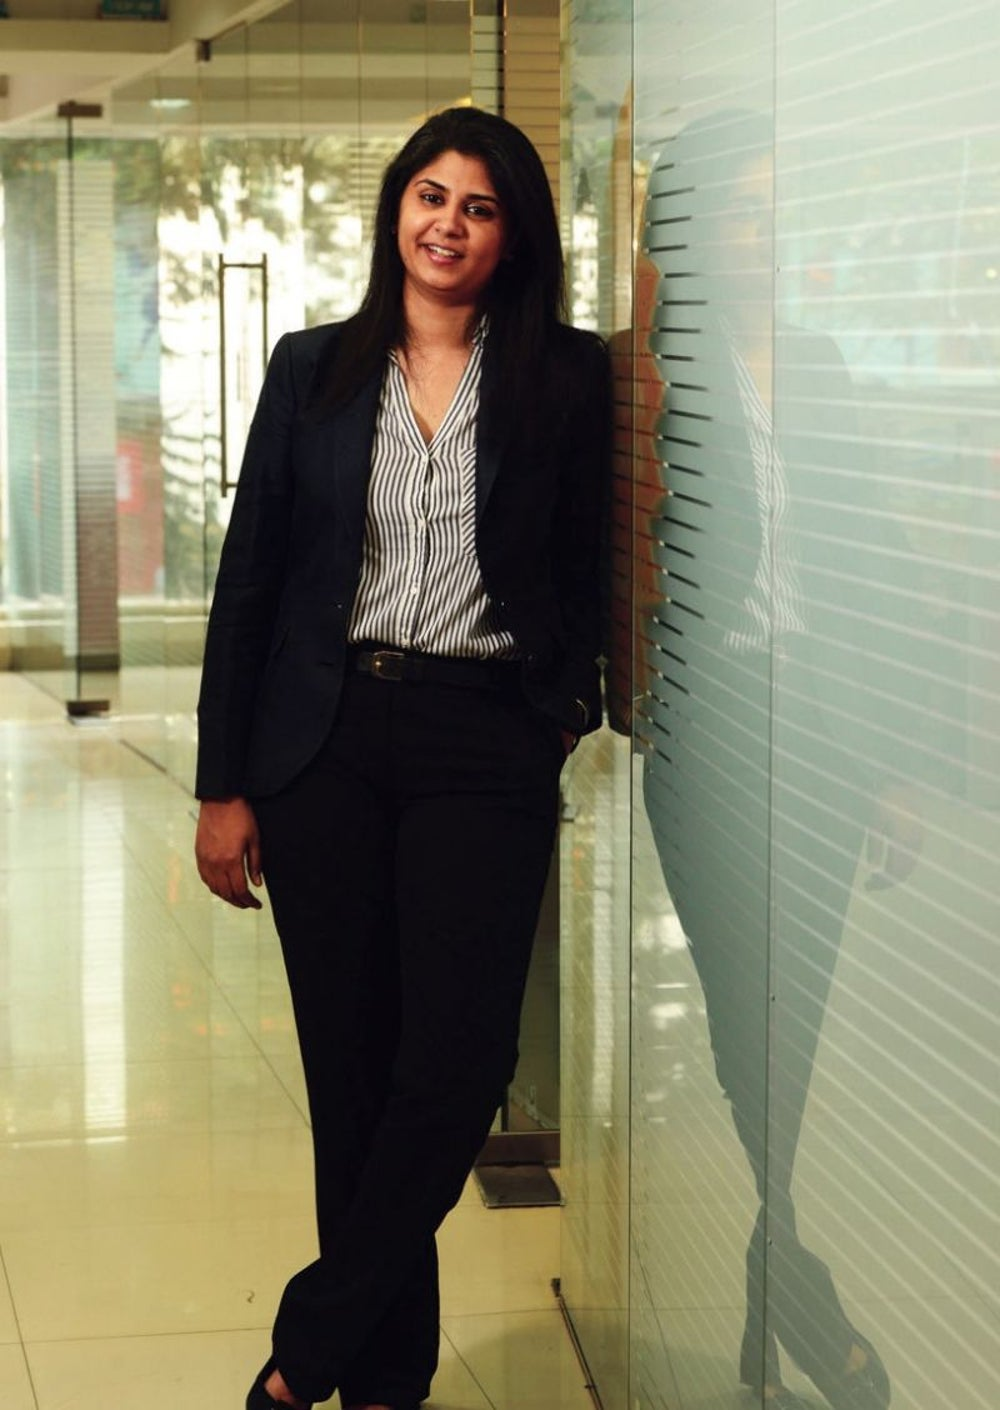 Anjana Reddy, Founder, Universal Sportsbiz - The sports merchant